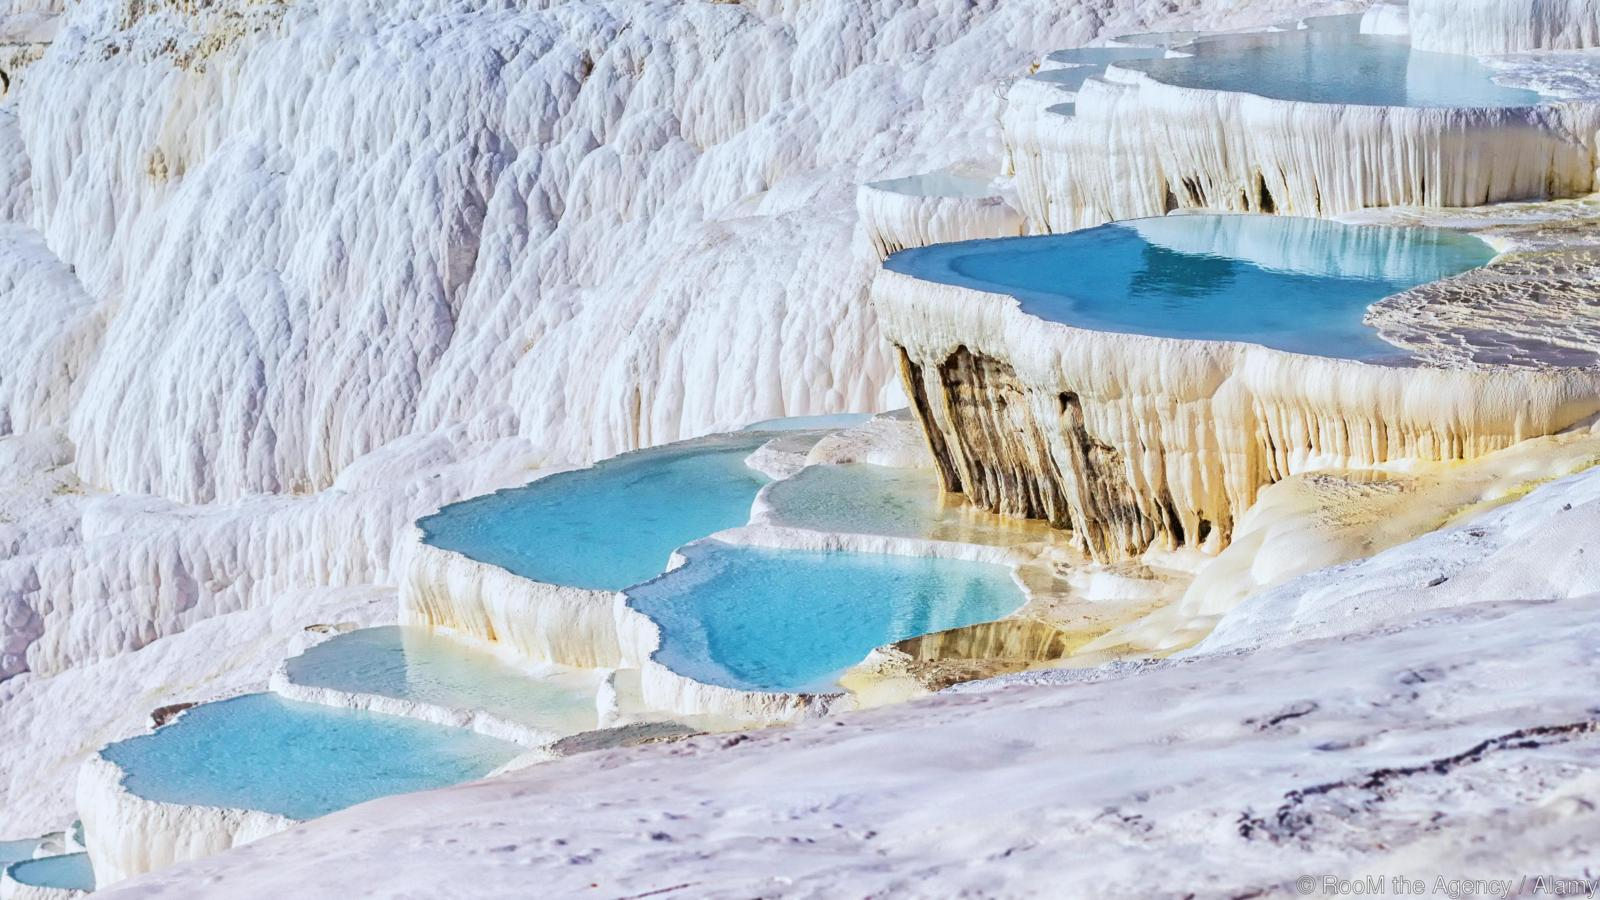 EG0J3M Turkey, Pamukkale, Pools and terraces